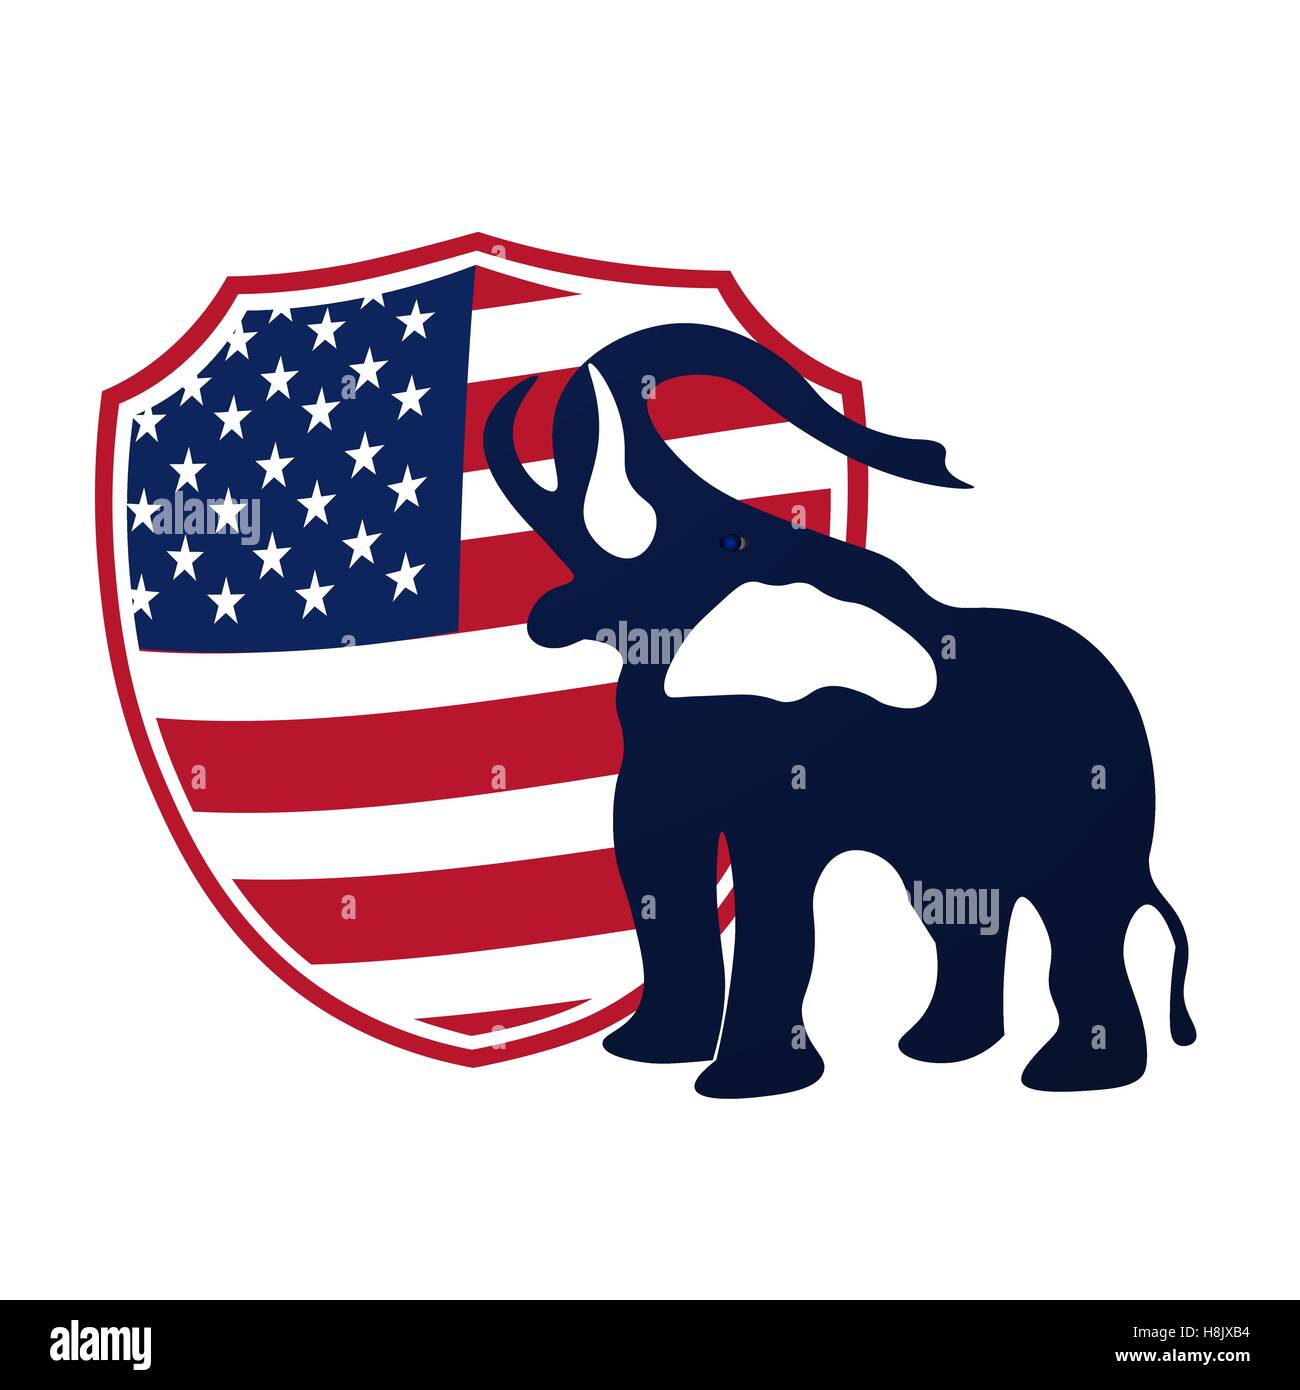 Republican elephant in the background of the shield in the colors of the American flag. Republican victory in US - Stock Image